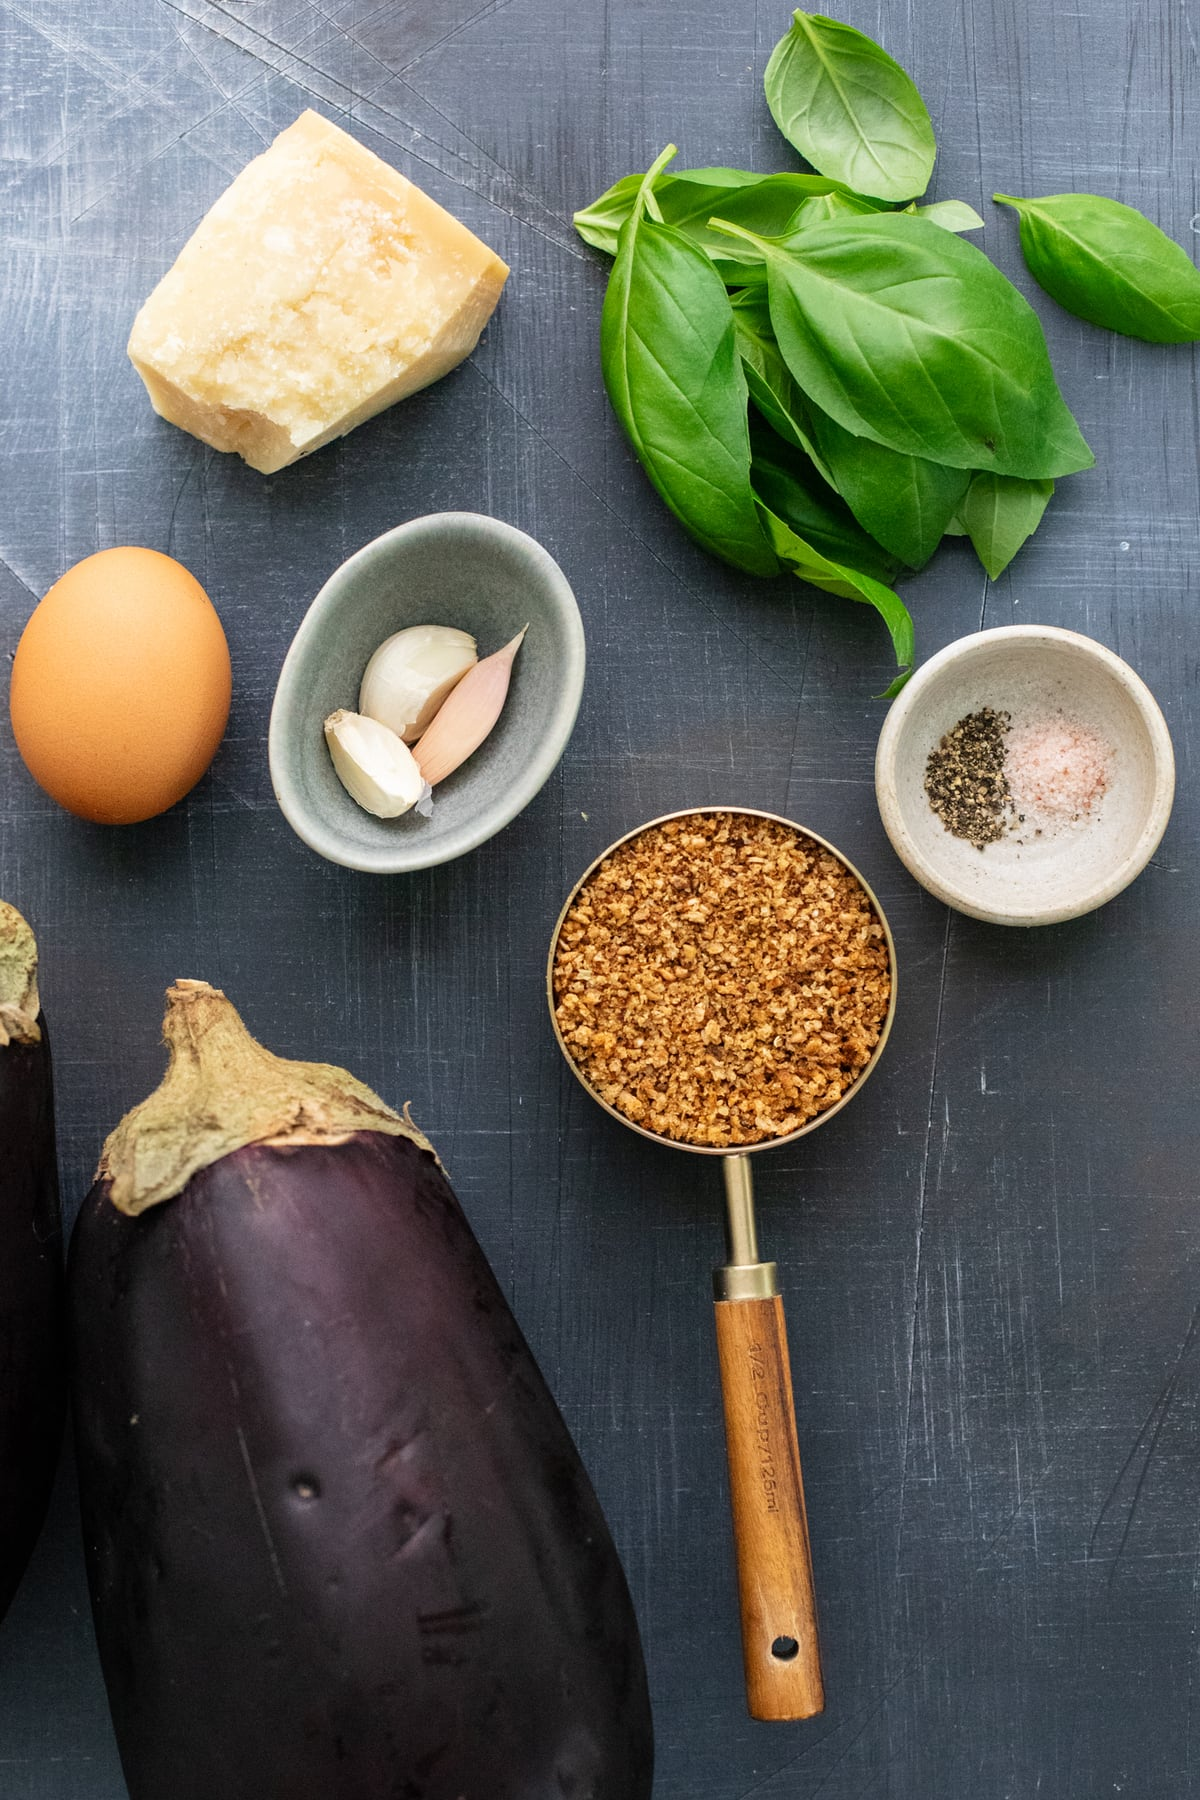 ingredients for eggplant meatballs arranged on a dark gray background.